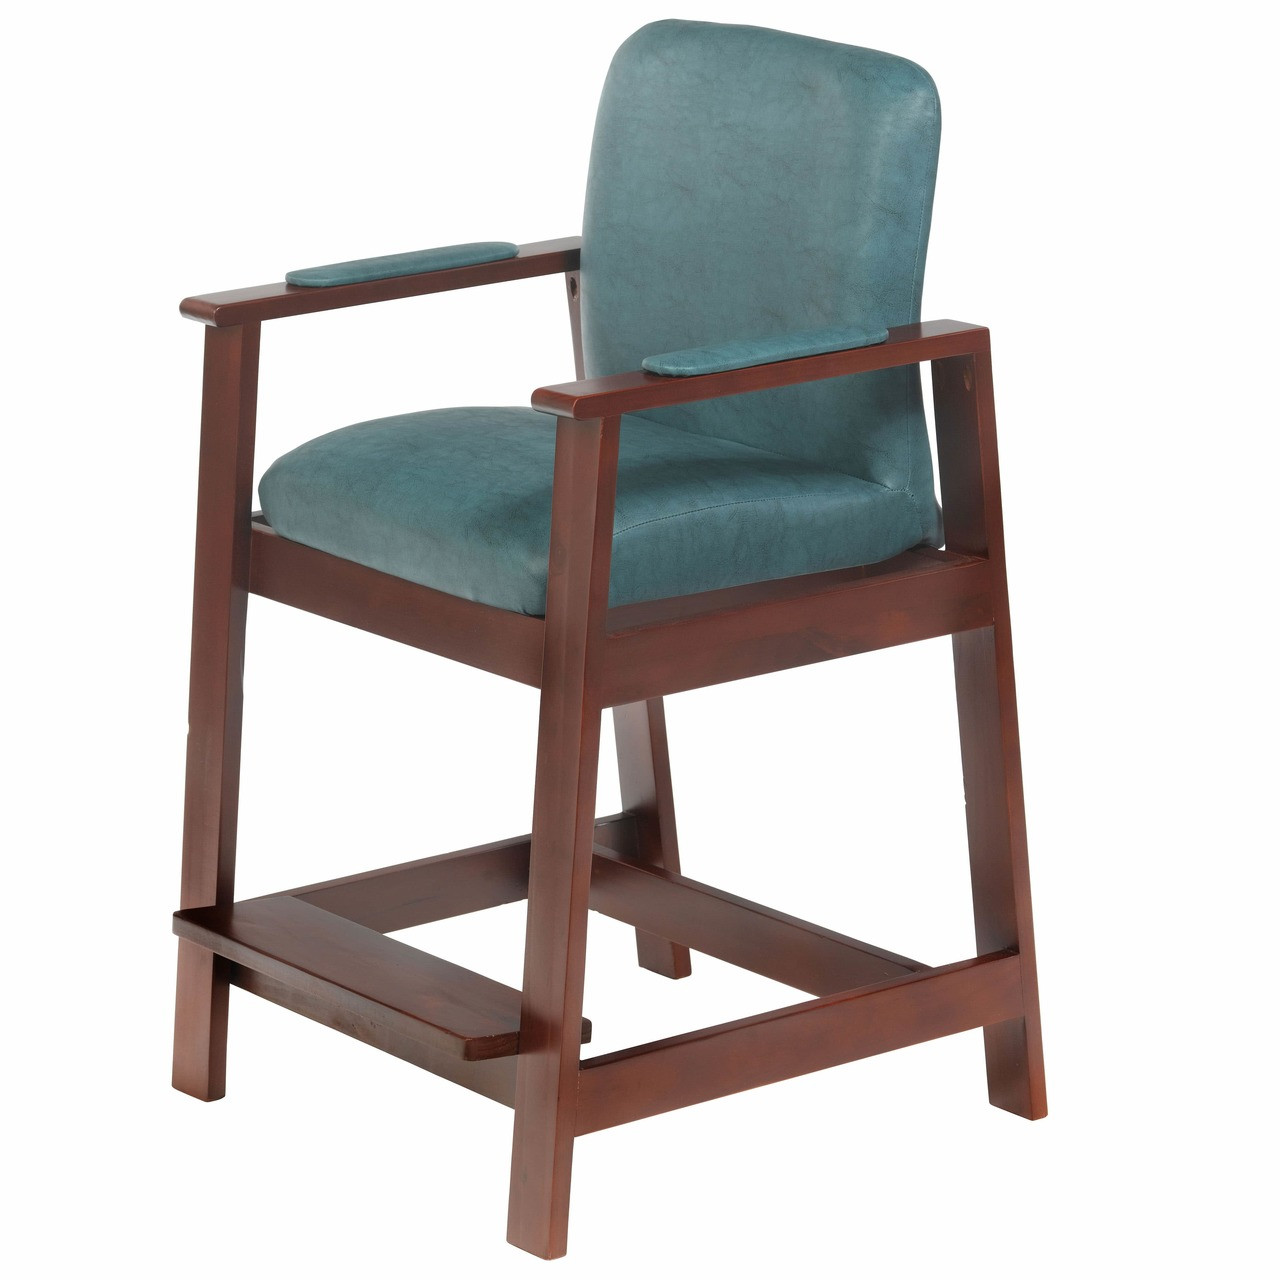 high chairs for seniors swing chair hammock wooden hip model 17100 baron medical supplies